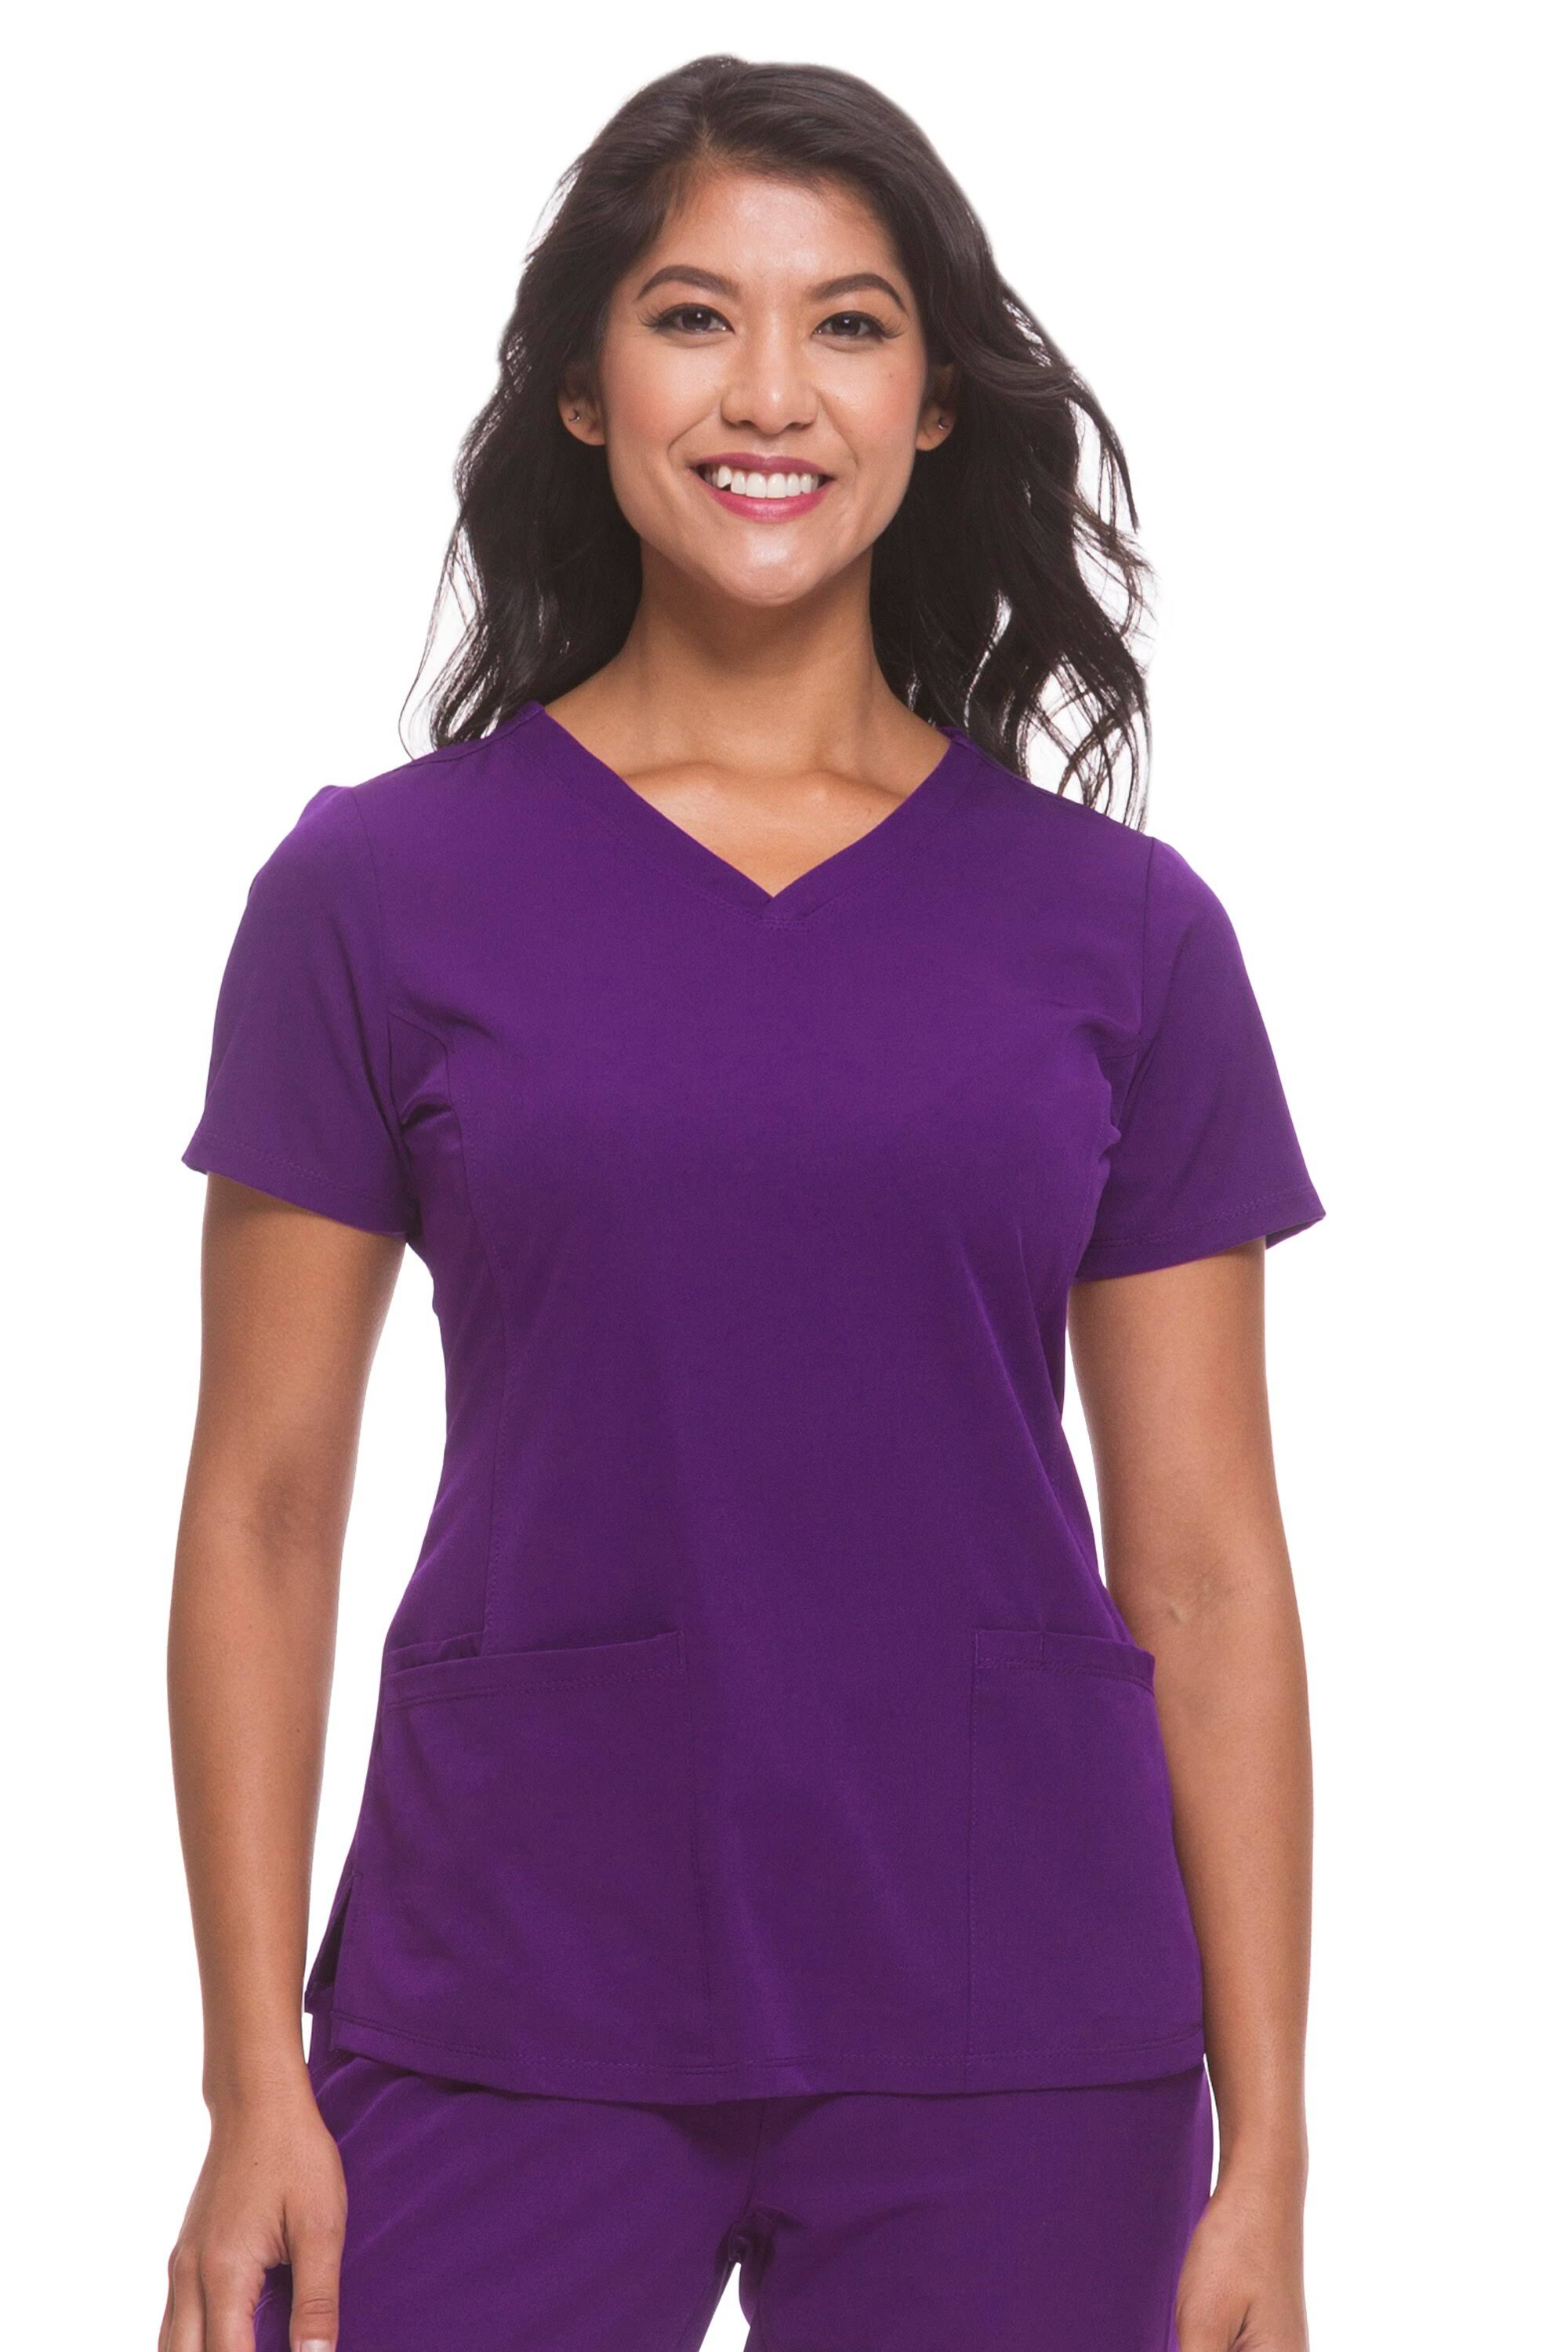 HH Works by Healing Hands Monica V-Neck Scrub Top - M - Eggplant